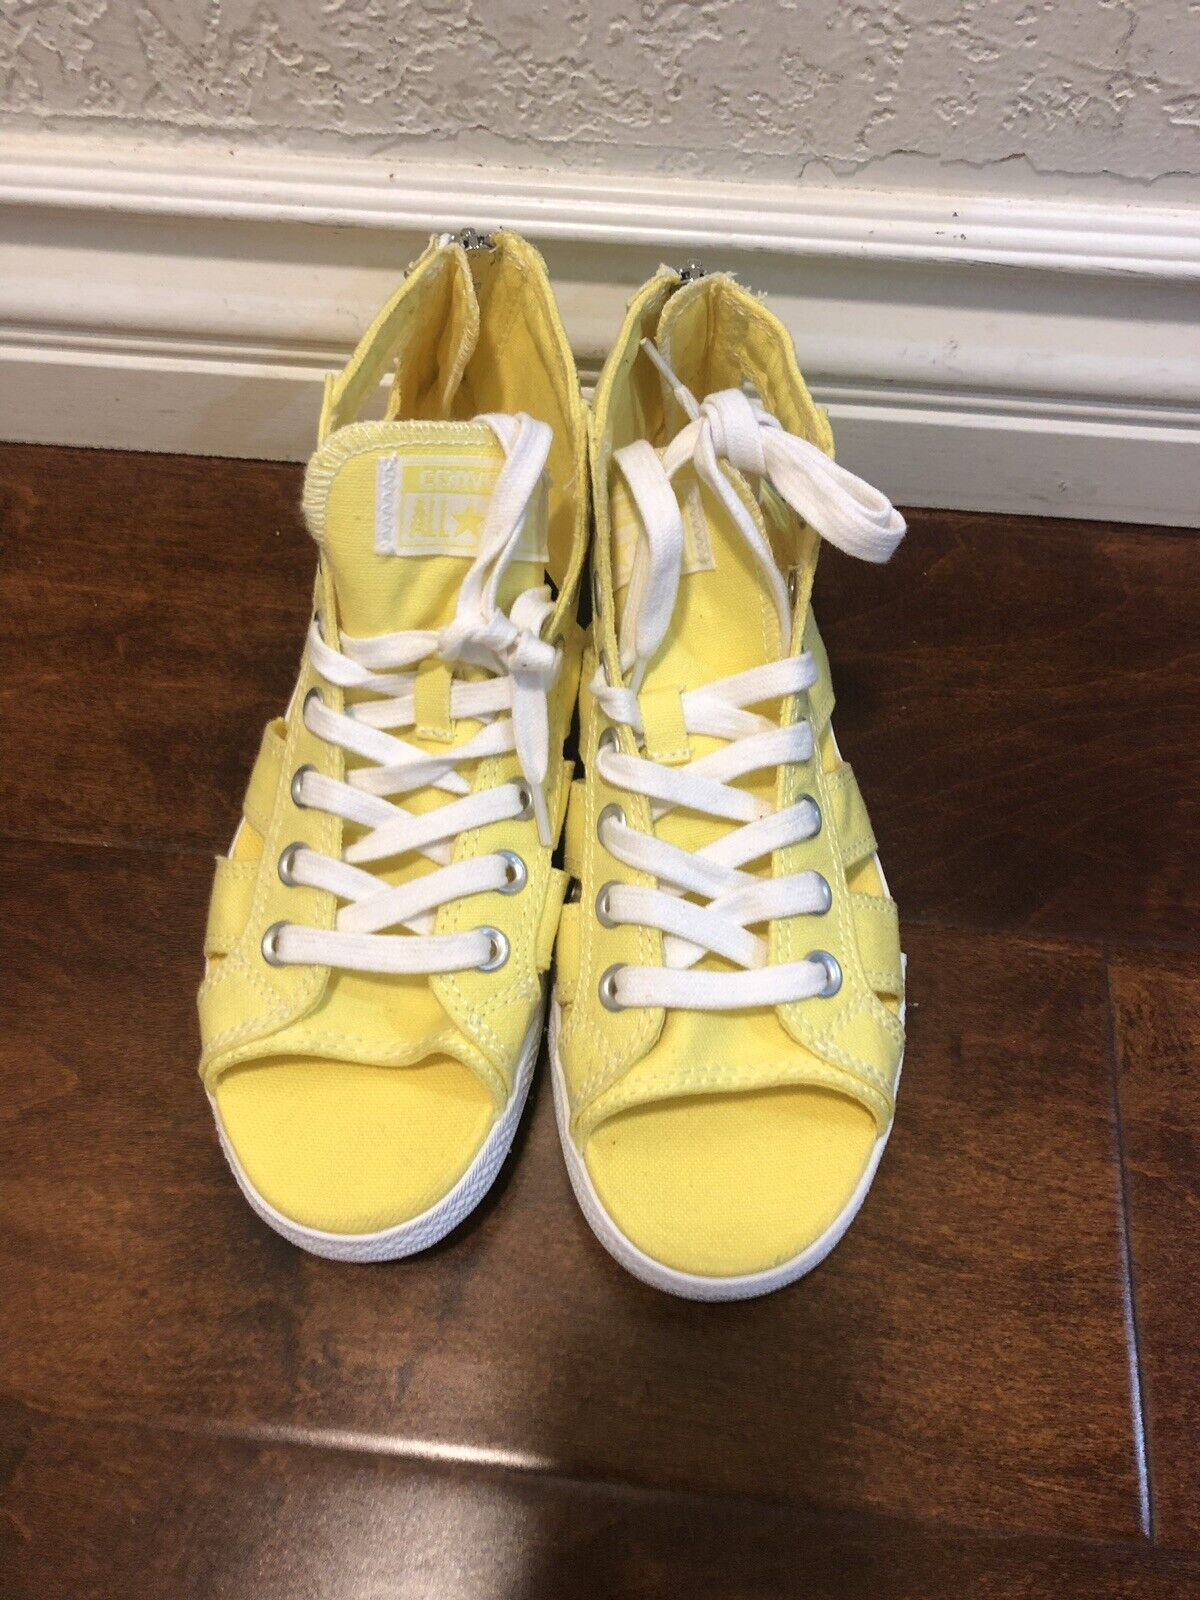 Converse All Stars Chucks Canvas Gladiator Sandals Open Toe Yellow Womens Sz 7